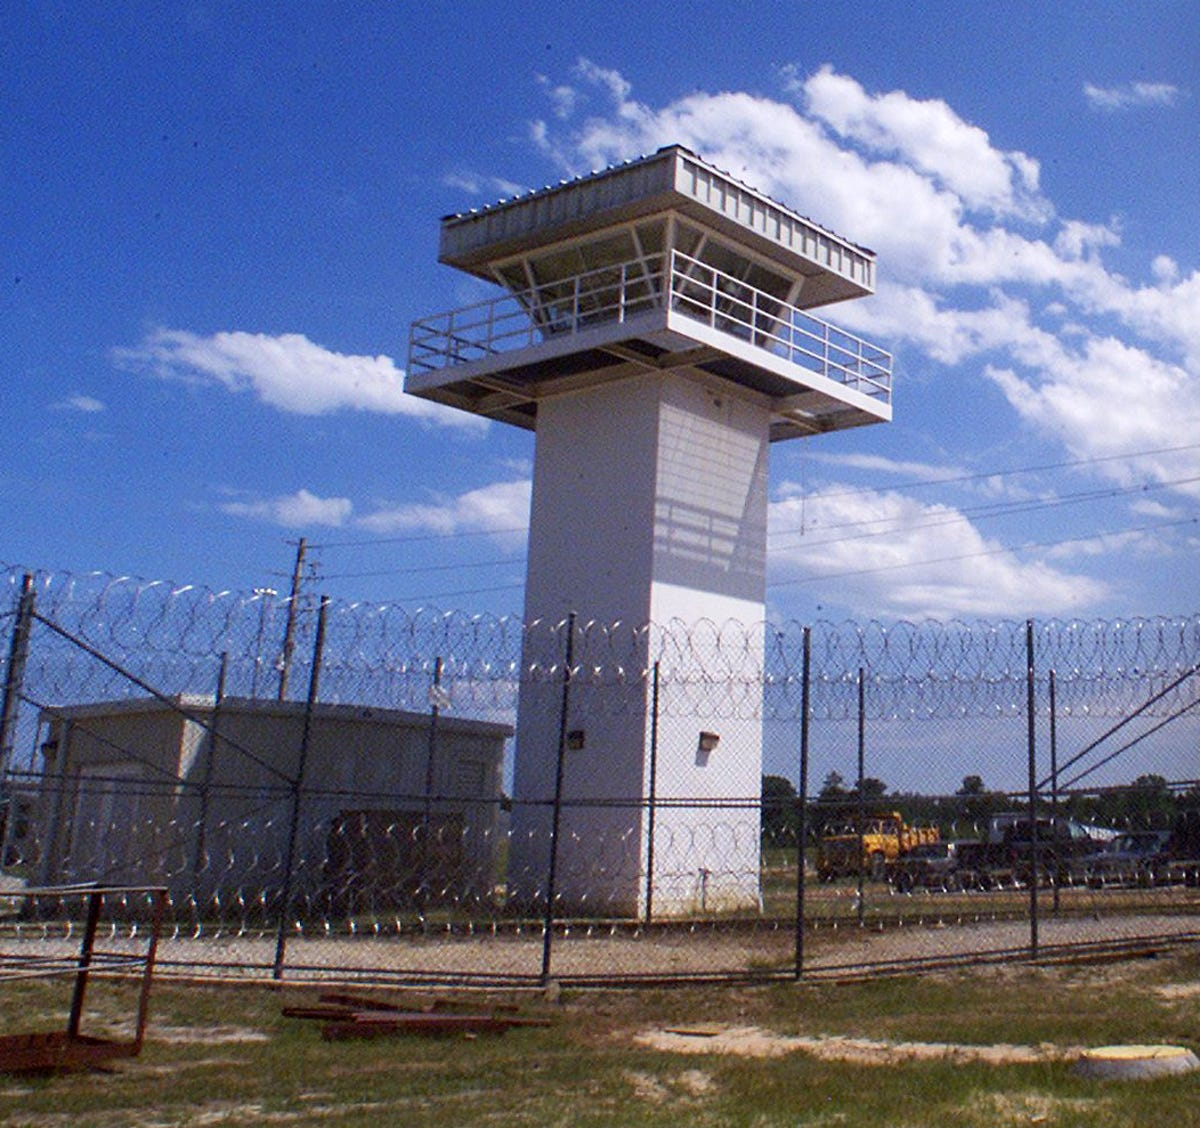 Not enough guards: Prison lockdown, conditions called inhumane